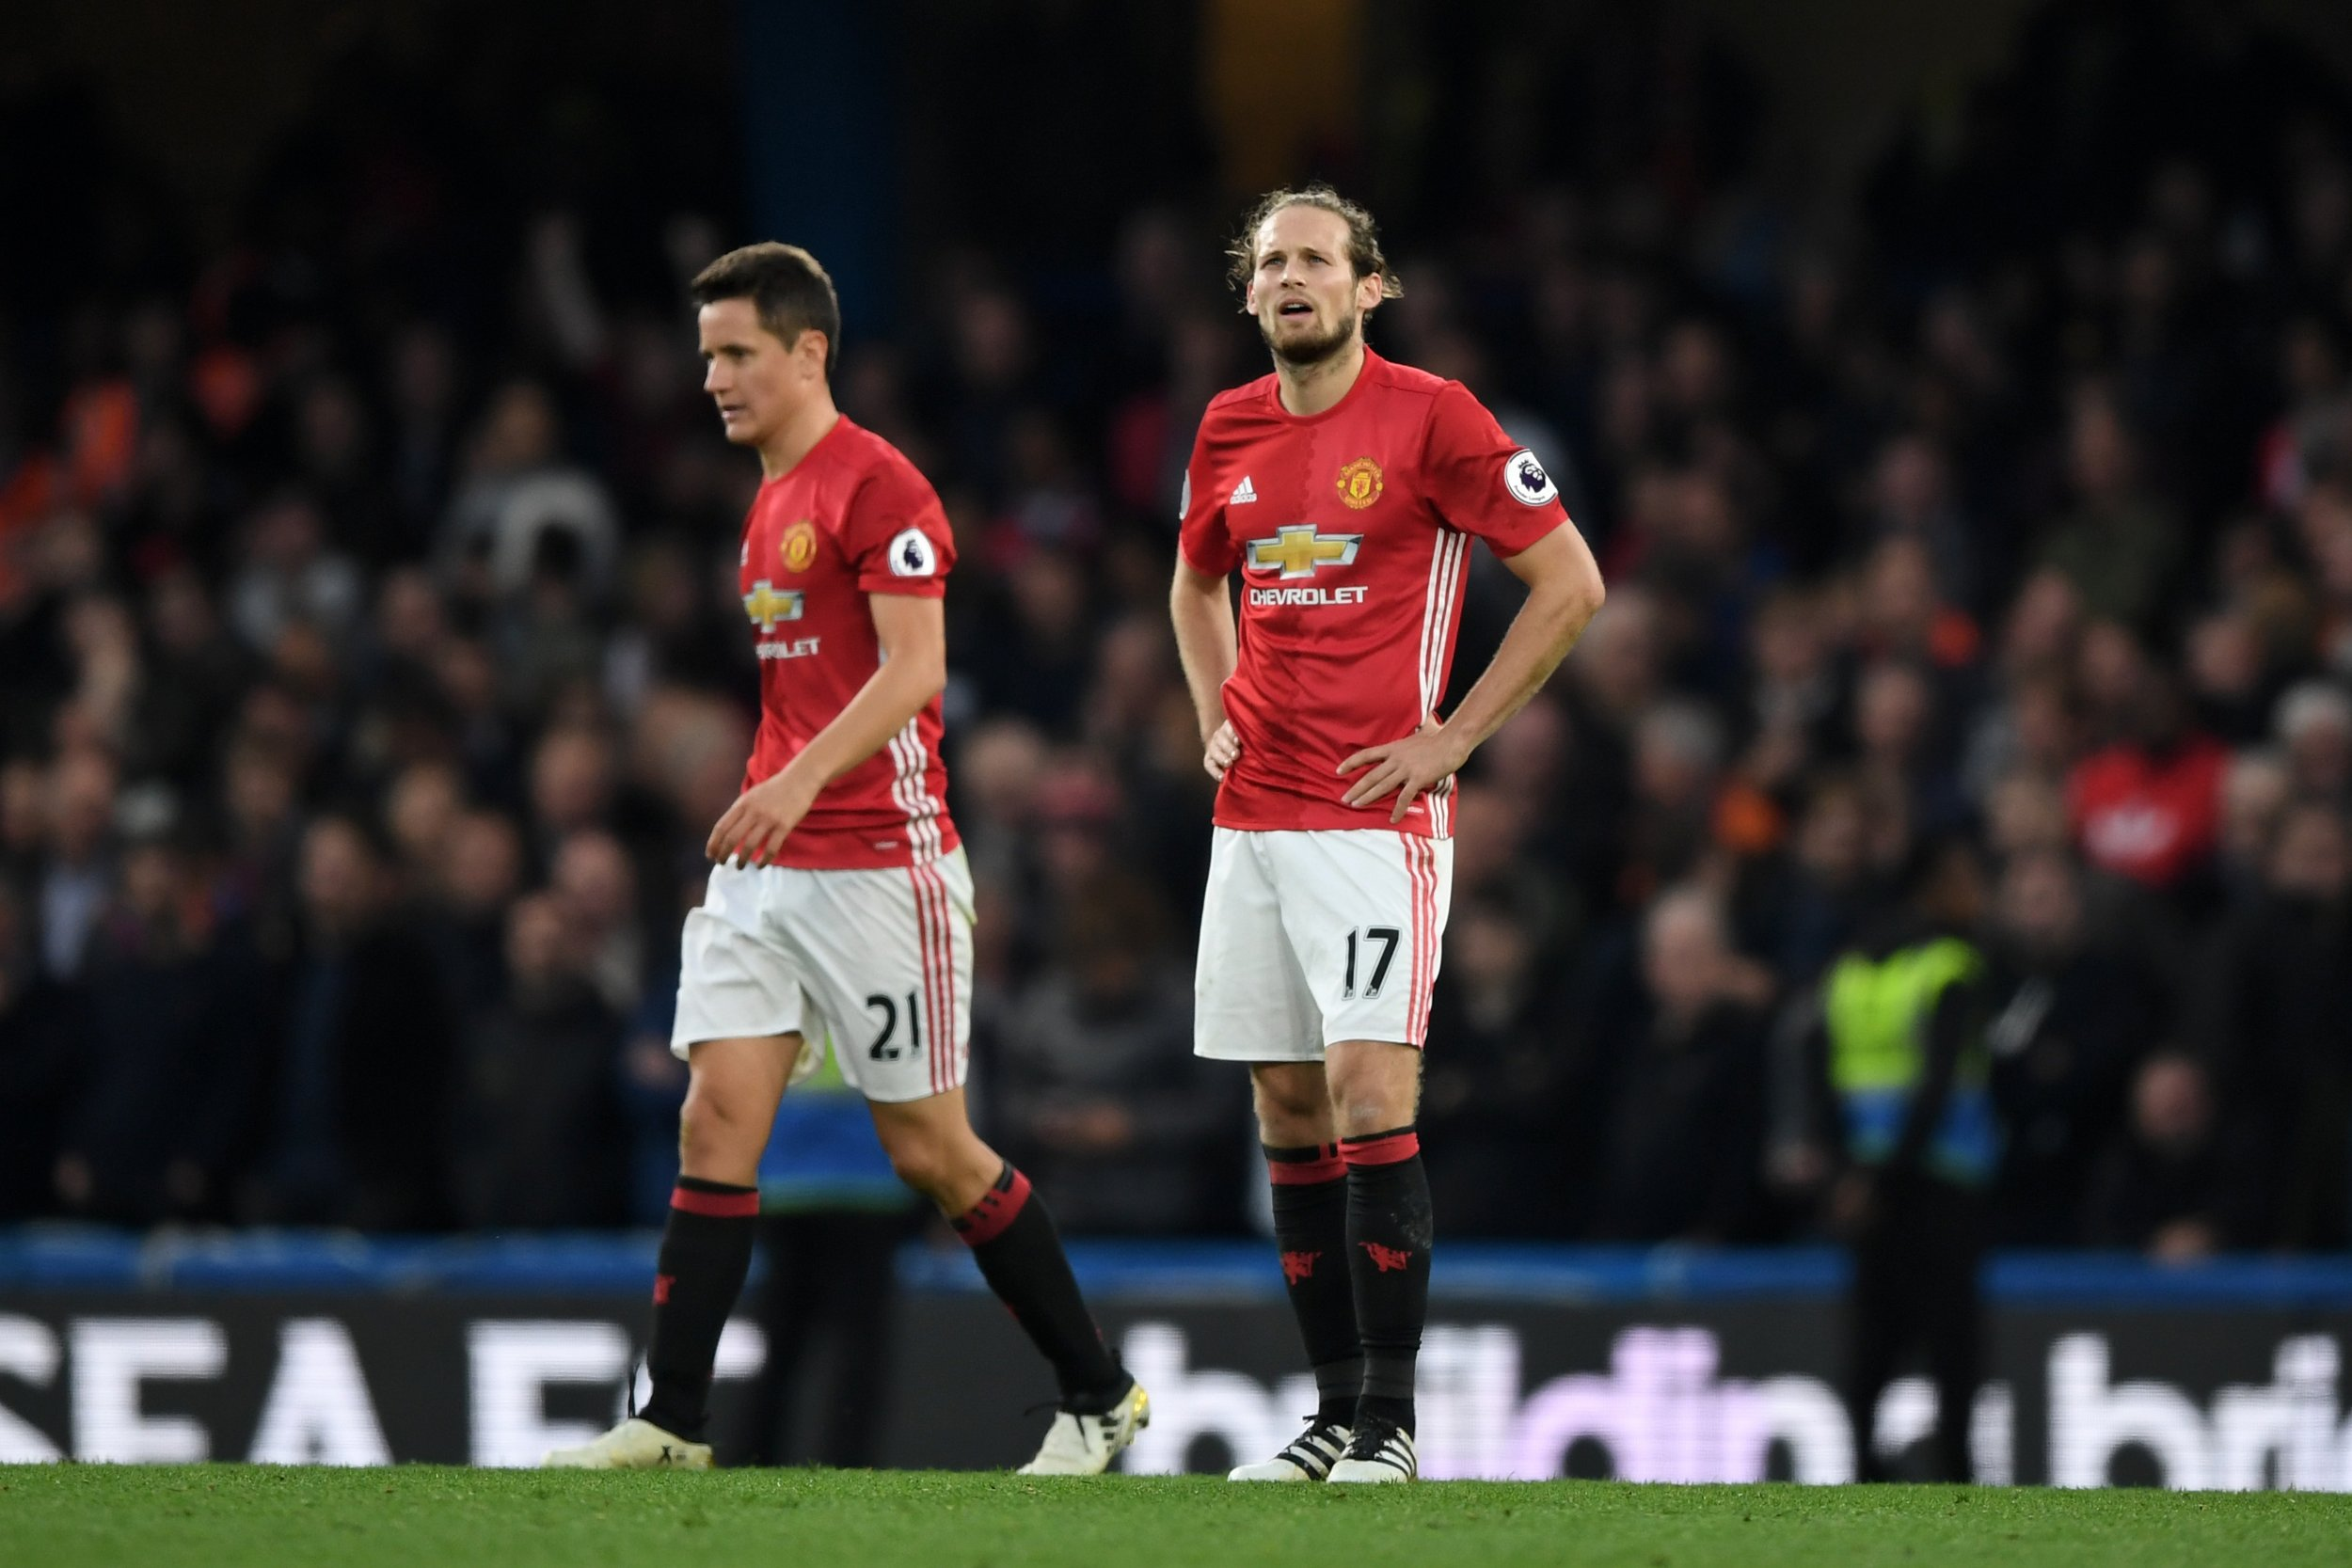 Ander Herrera and Daley Blind